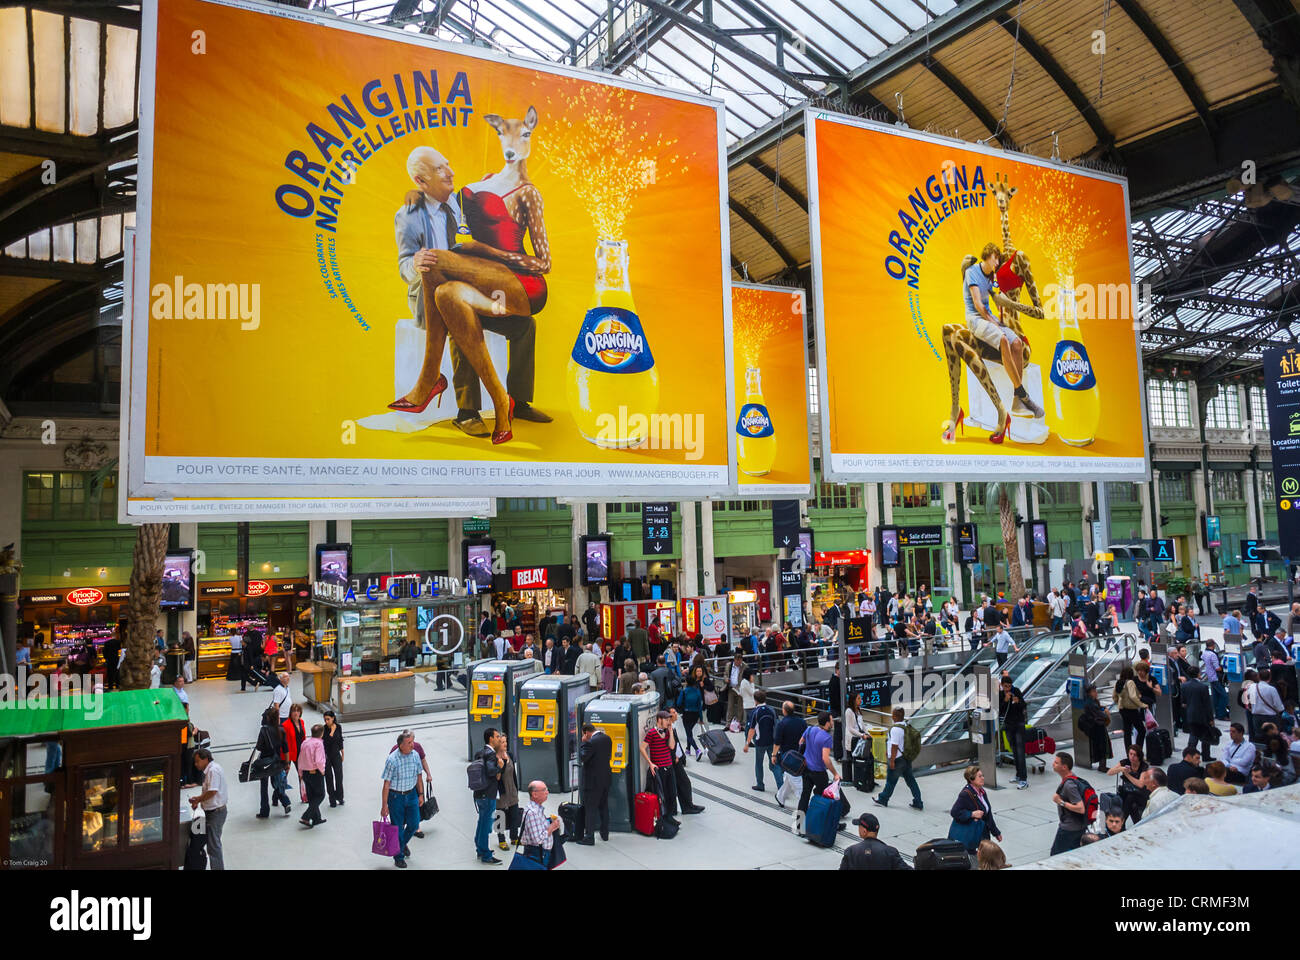 "Paris, France, French Soft drink Advertising Billboards in Train Station, ""Gare de Lyon"", Orangina (Coca Cola) Stock Photo"